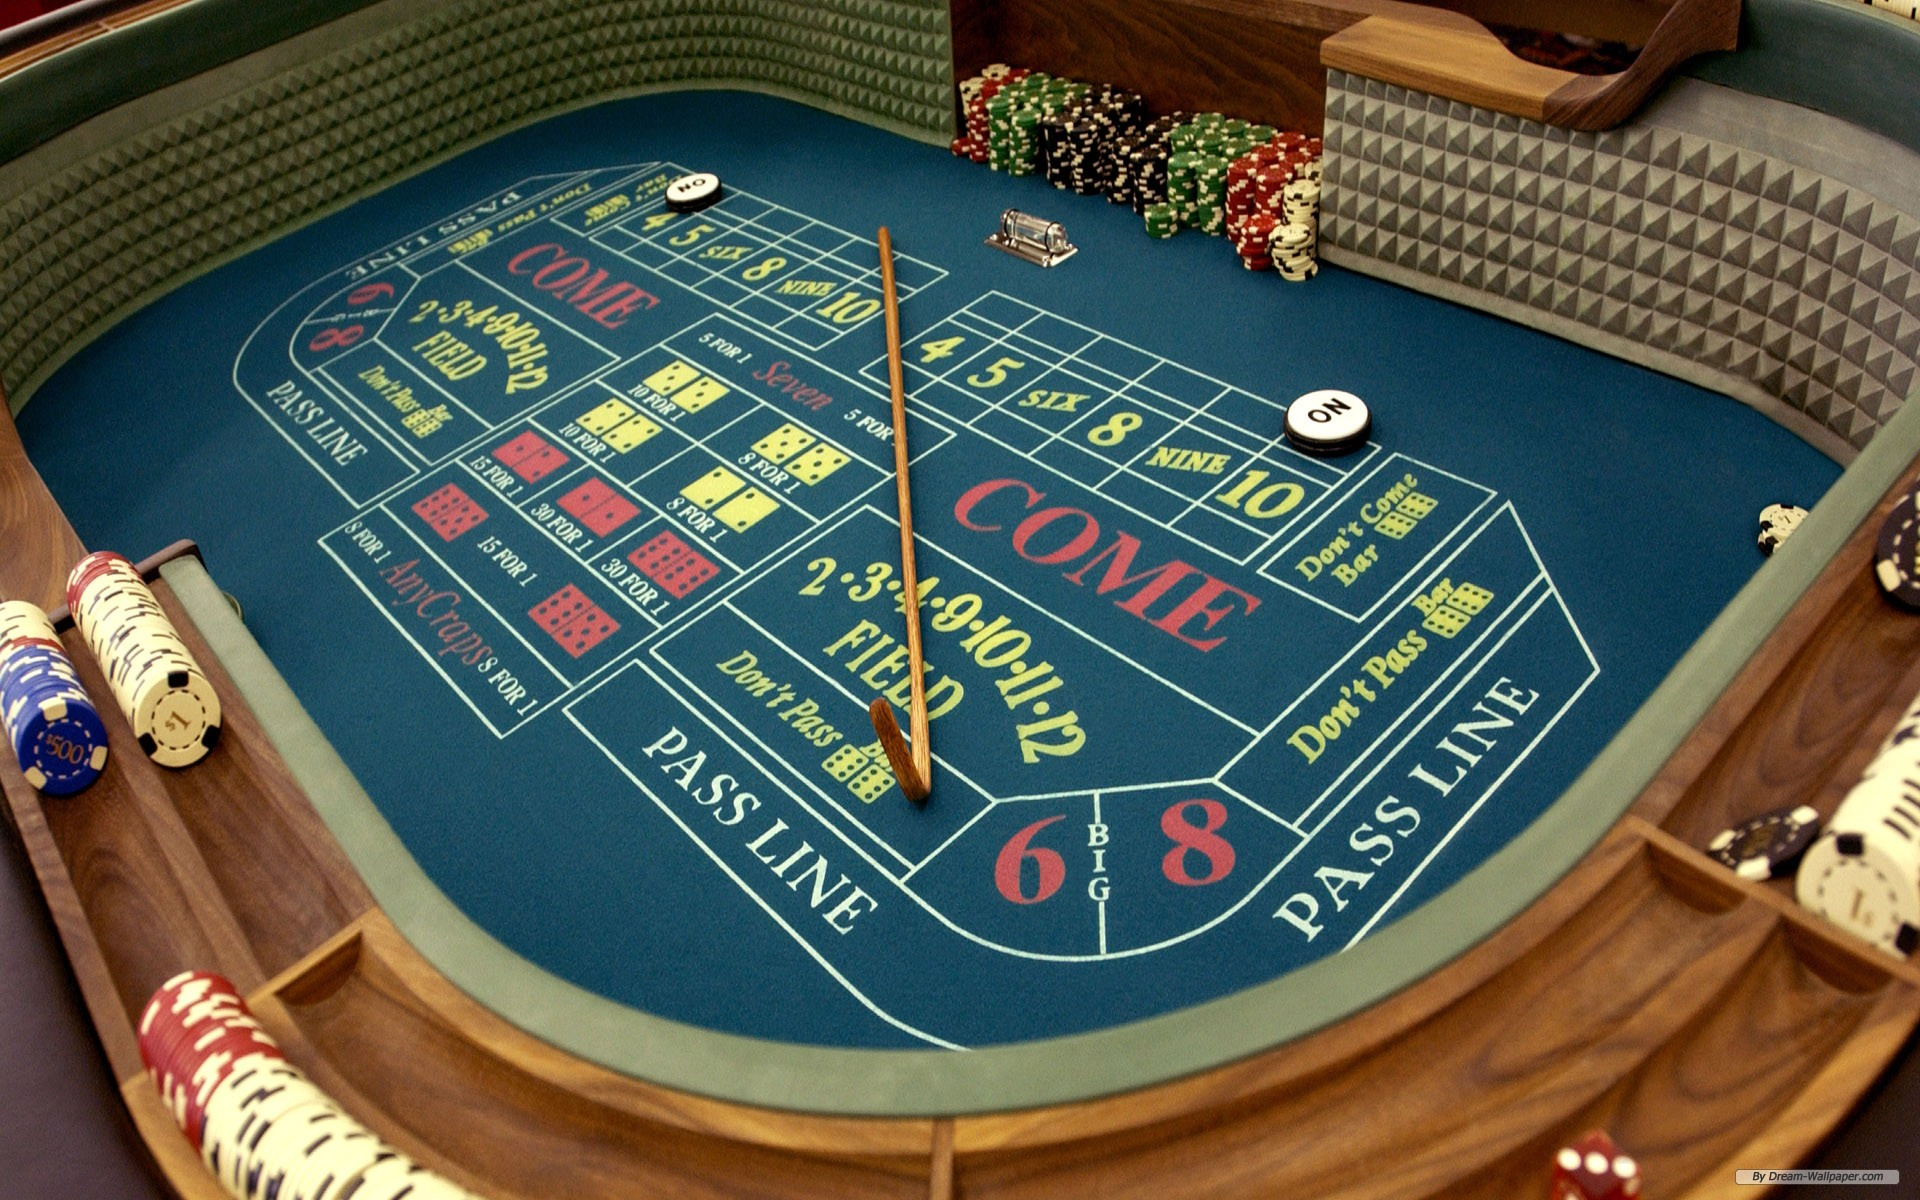 Access to Gclub, download Gclub, online casinos, the latest updates